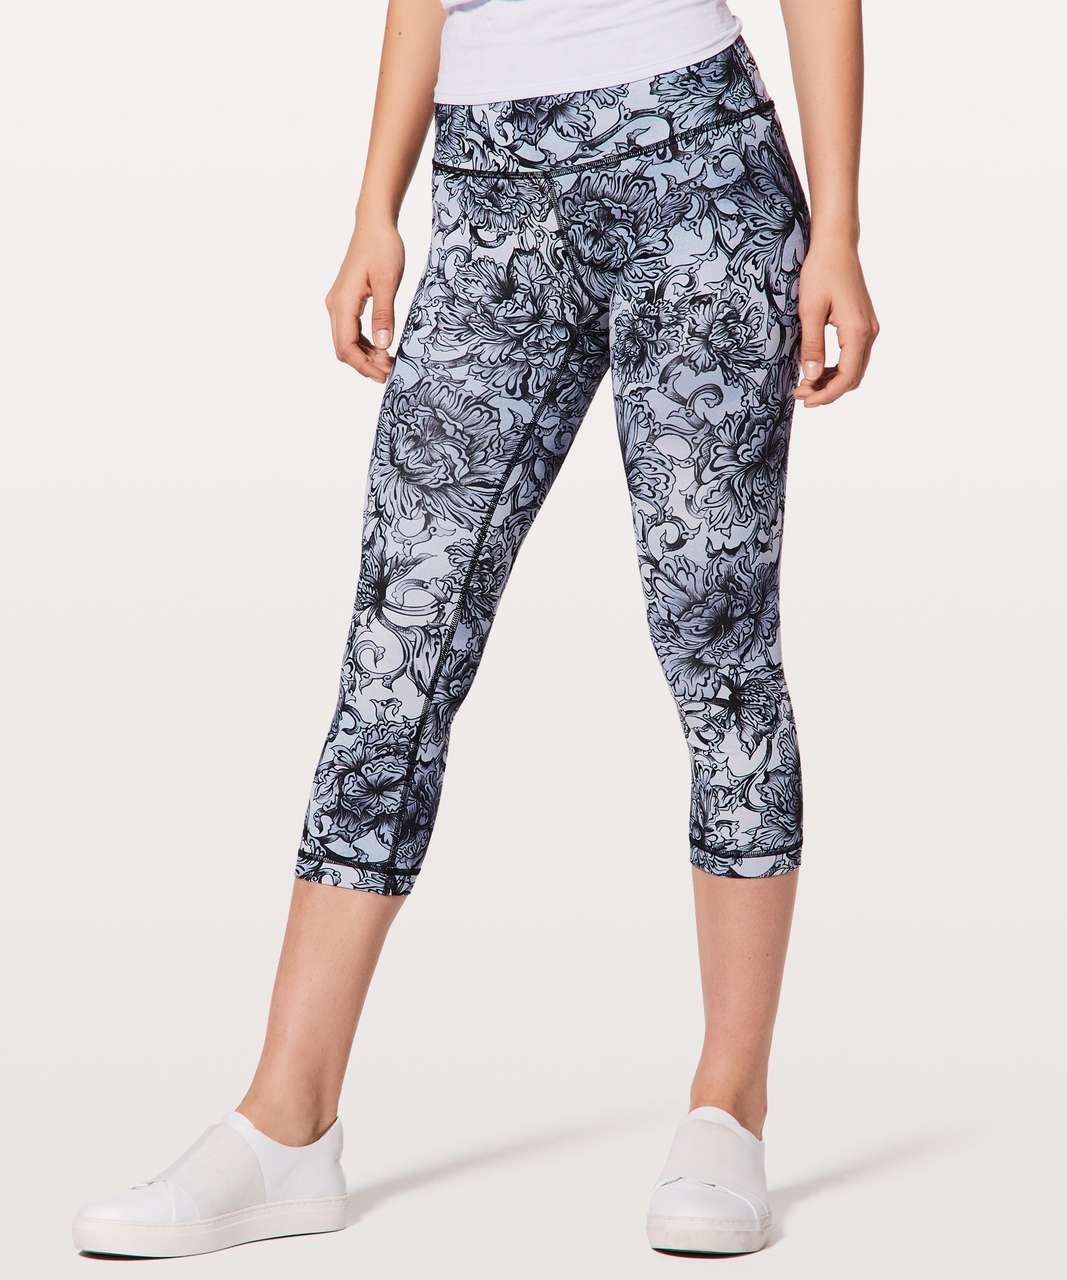 "Lululemon Wunder Under Crop (Hi-Rise) *Full-On Luxtreme 21"" - Hanakotoba Starlight Multi"